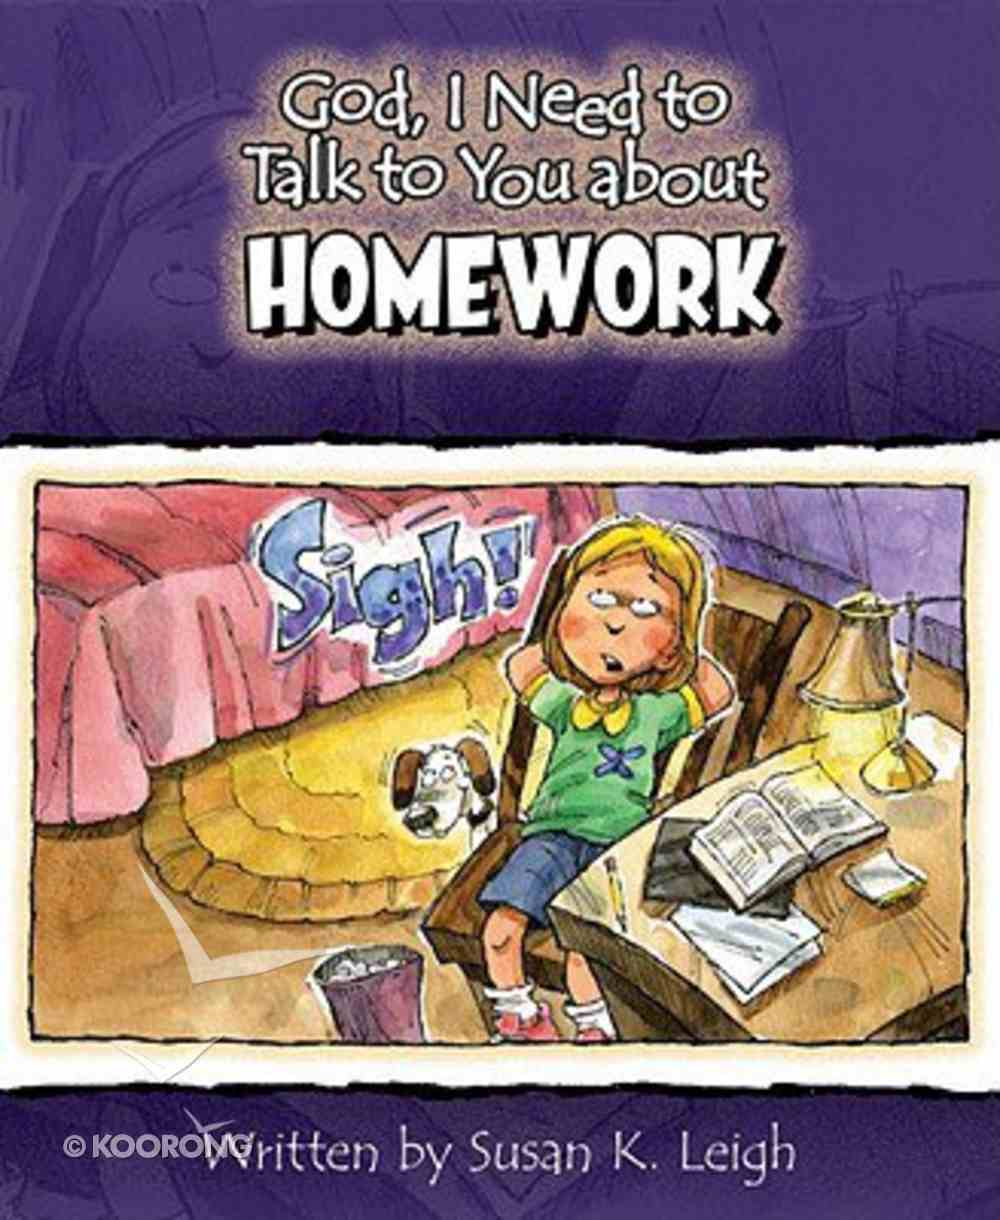 Homework (God, I Need To Talk To You About Series) Paperback